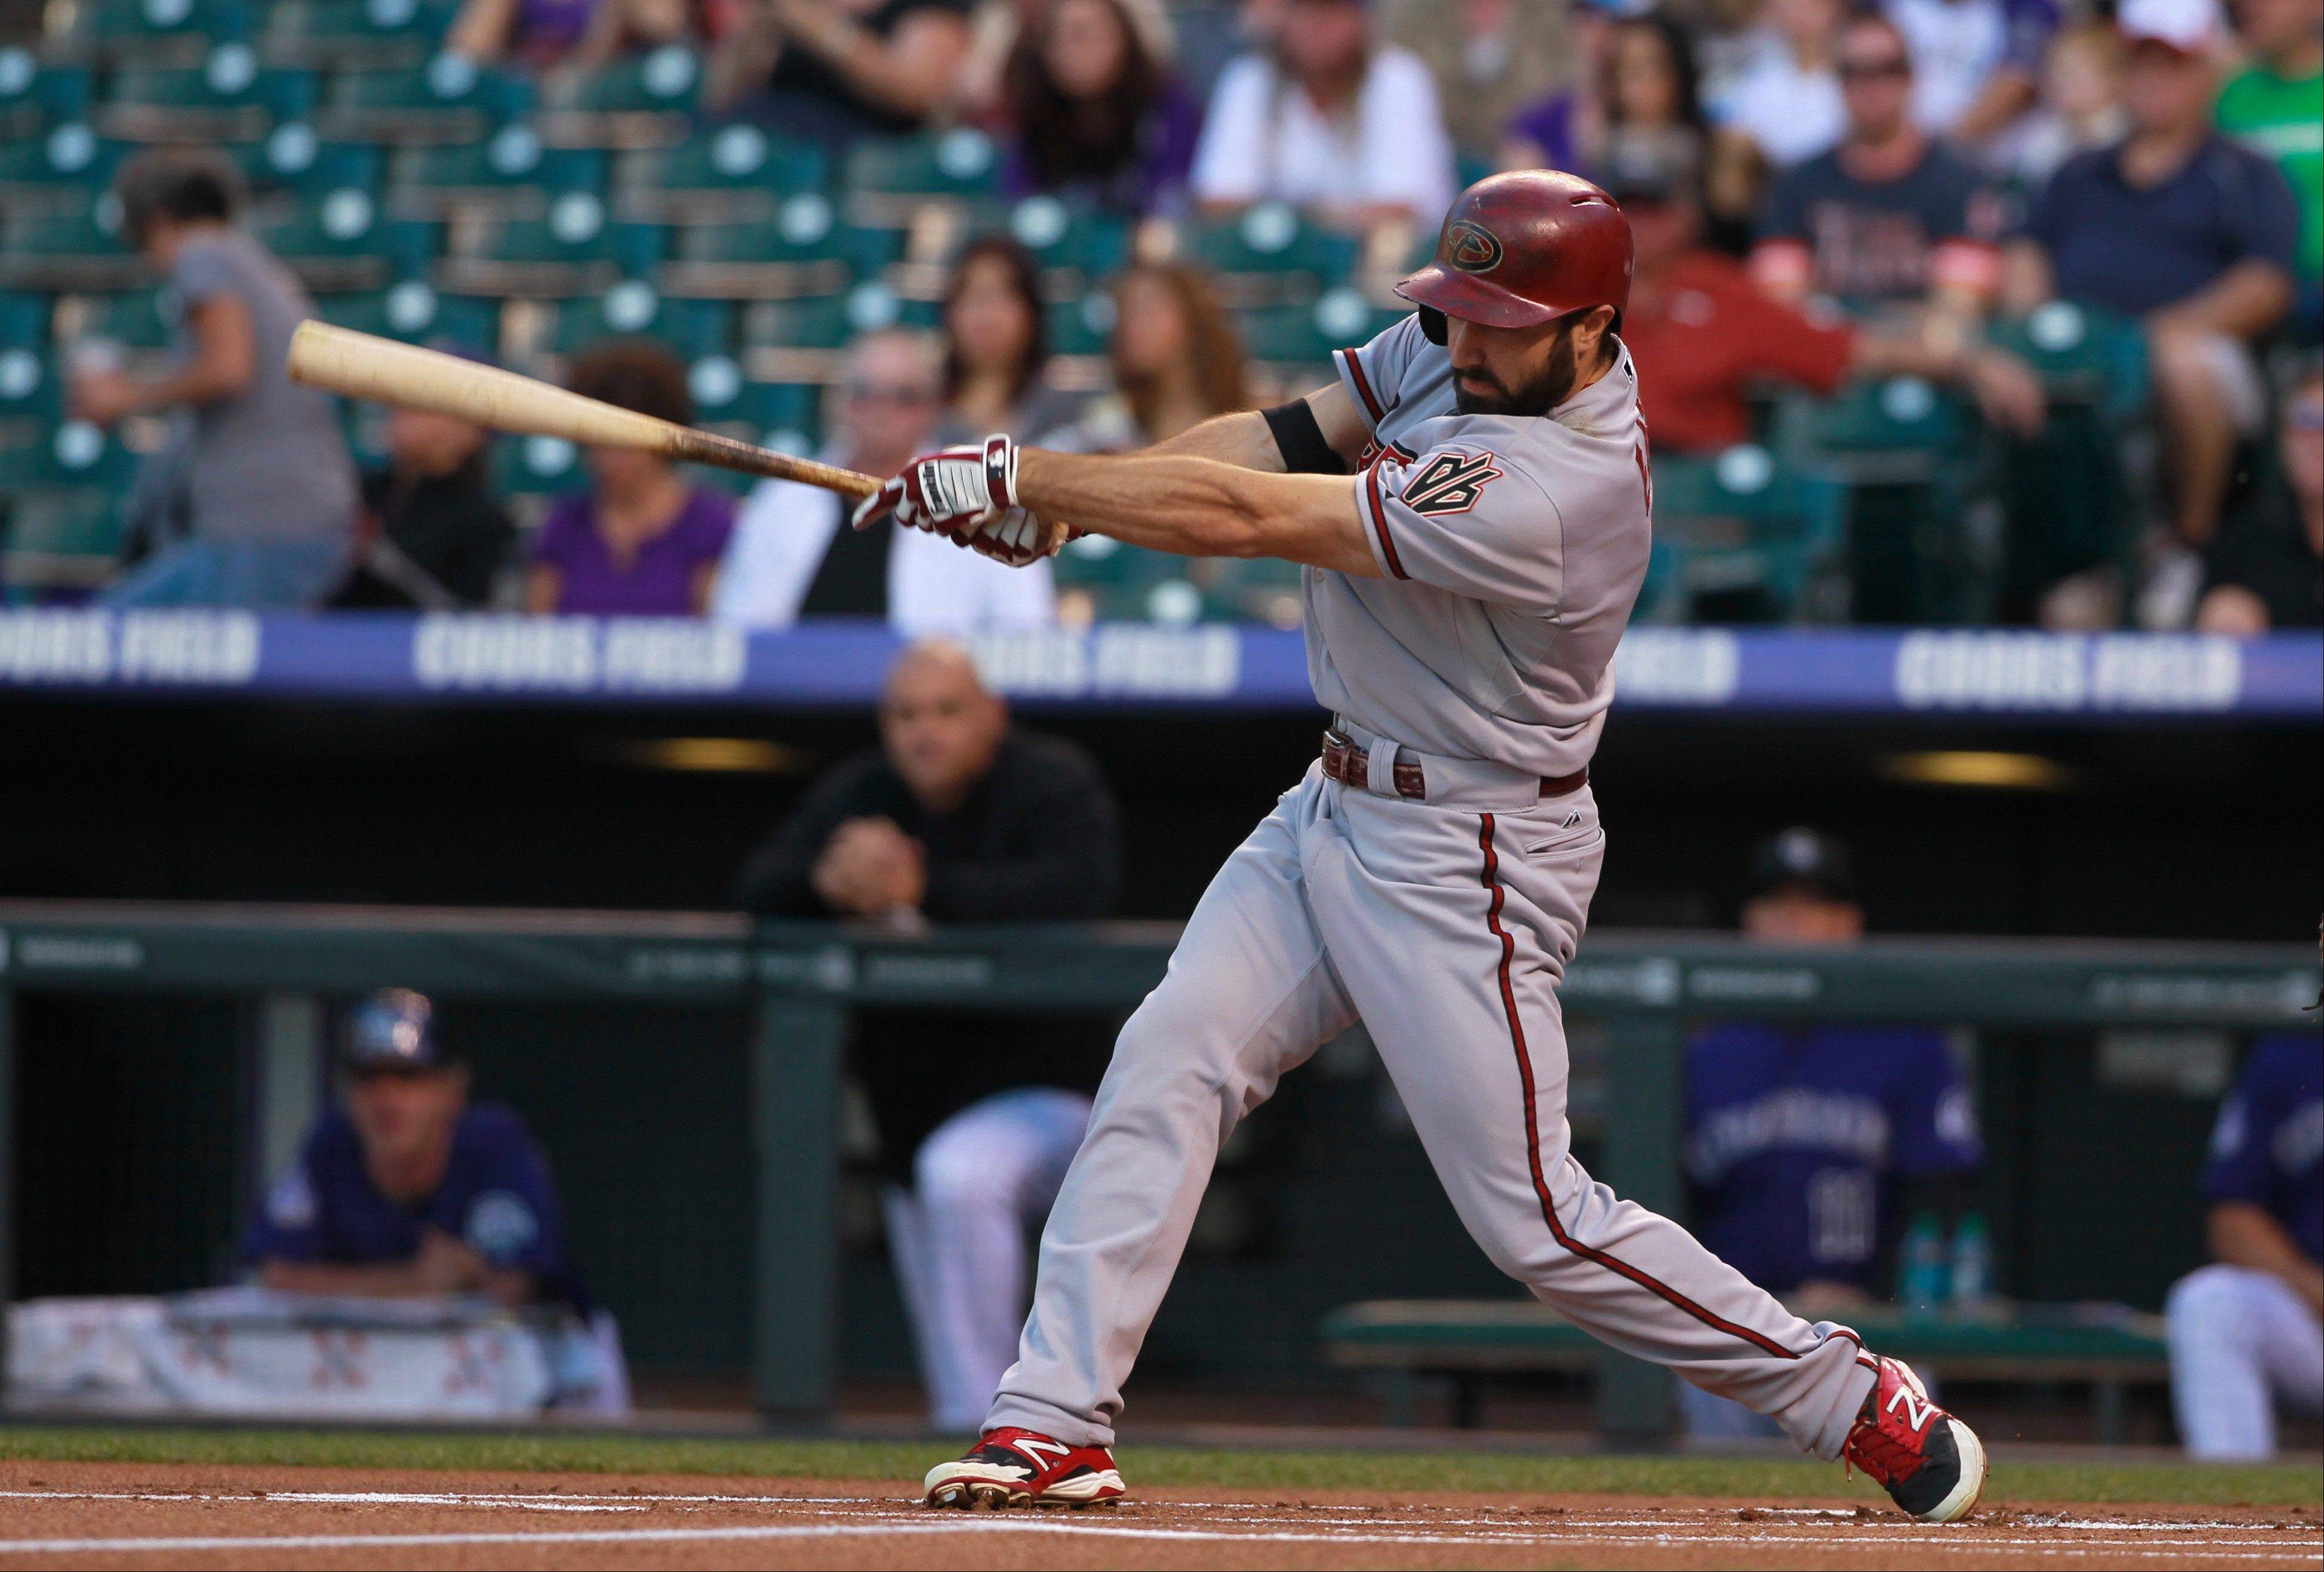 The White Sox get a much-needed left-handed hitter in a three-team trade with Arizona and the L.A. Angels. The Sox gave up pitcher Hector Santiago and get 25-year-old center fielder Adam Eaton from the Diamondbacks.